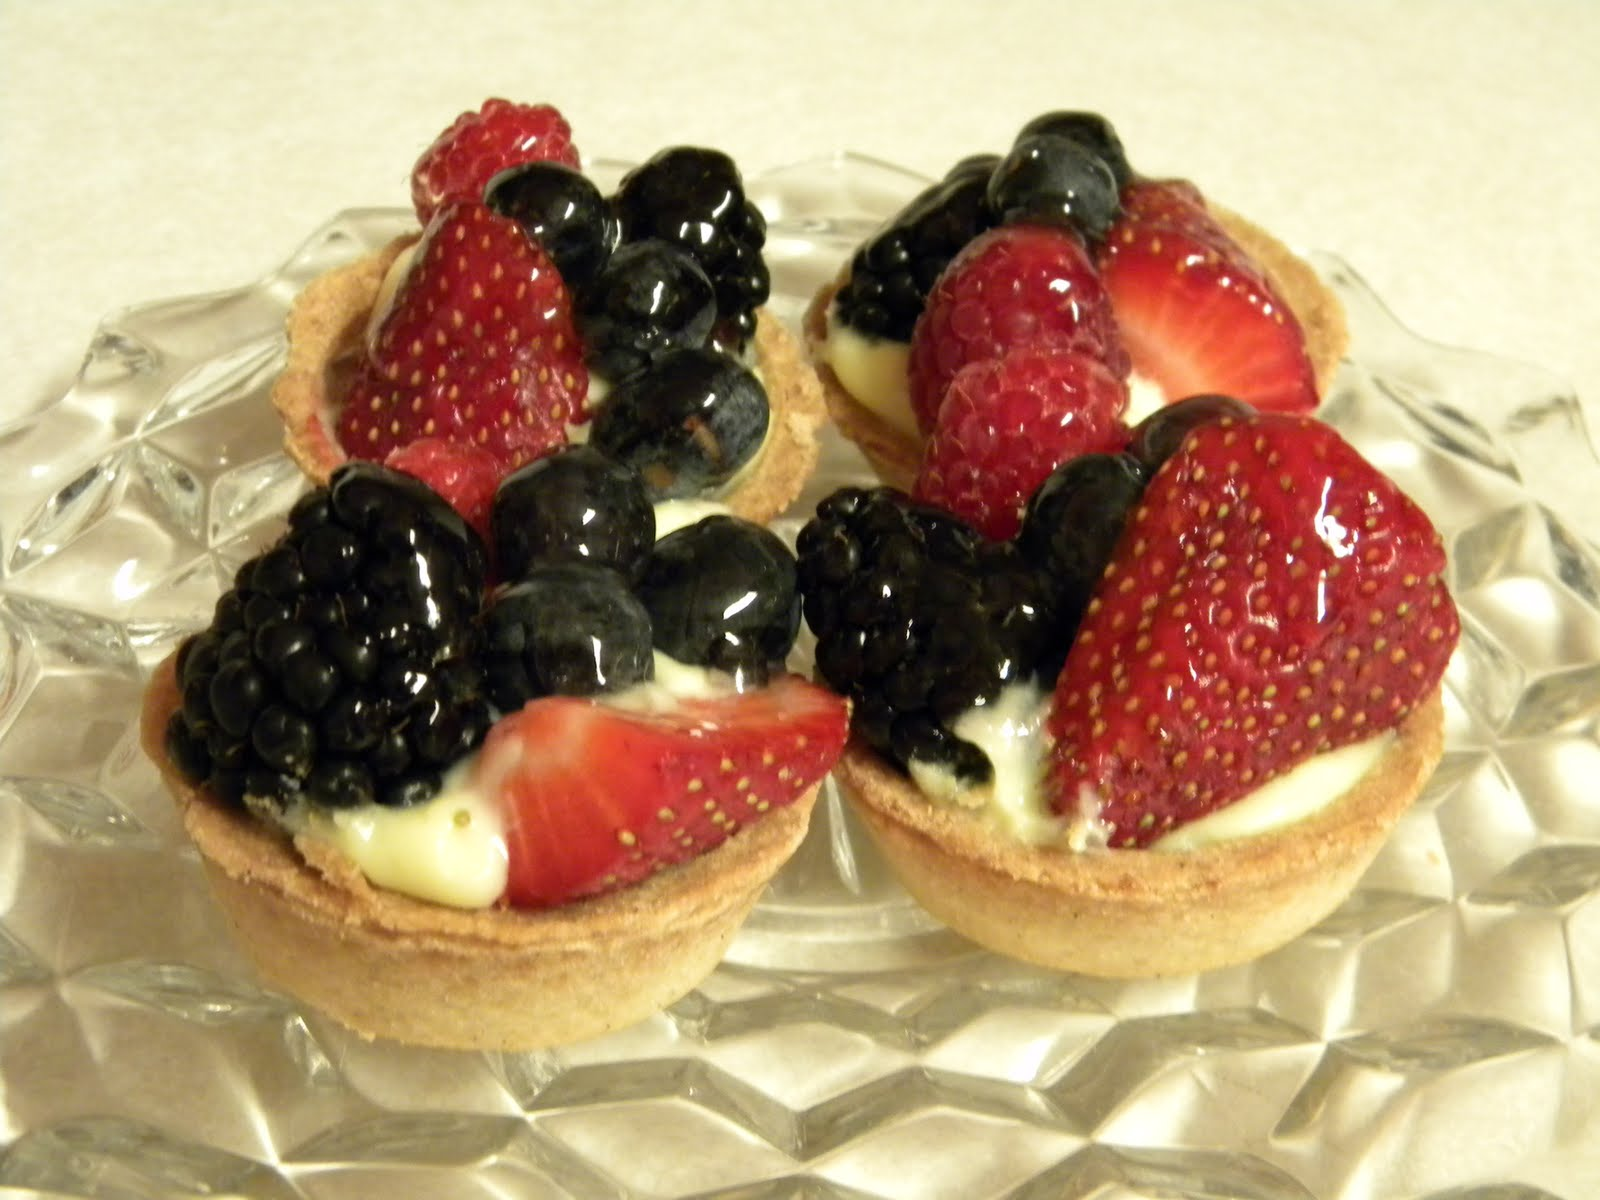 While at Whole Foods I picked up a tasty treat....Fresh Fruit Tarts...